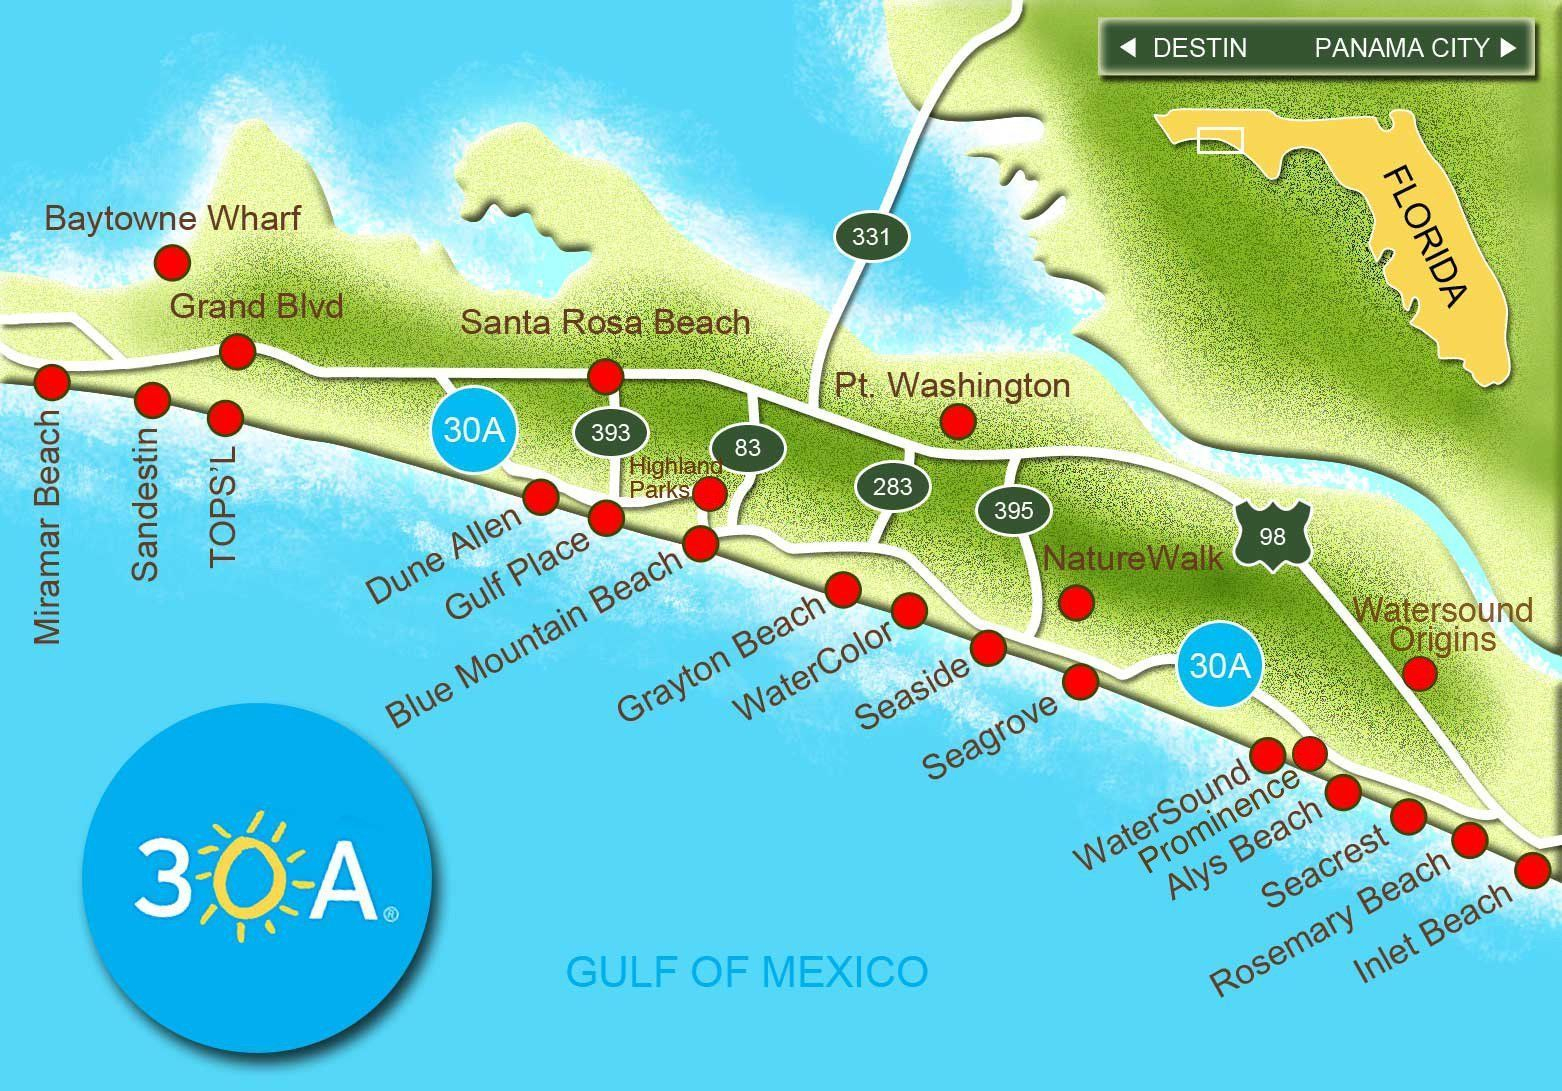 Map Of Scenic 30A And South Walton, Florida - 30A Panhandle Coast - Map Of Florida Panhandle Gulf Coast